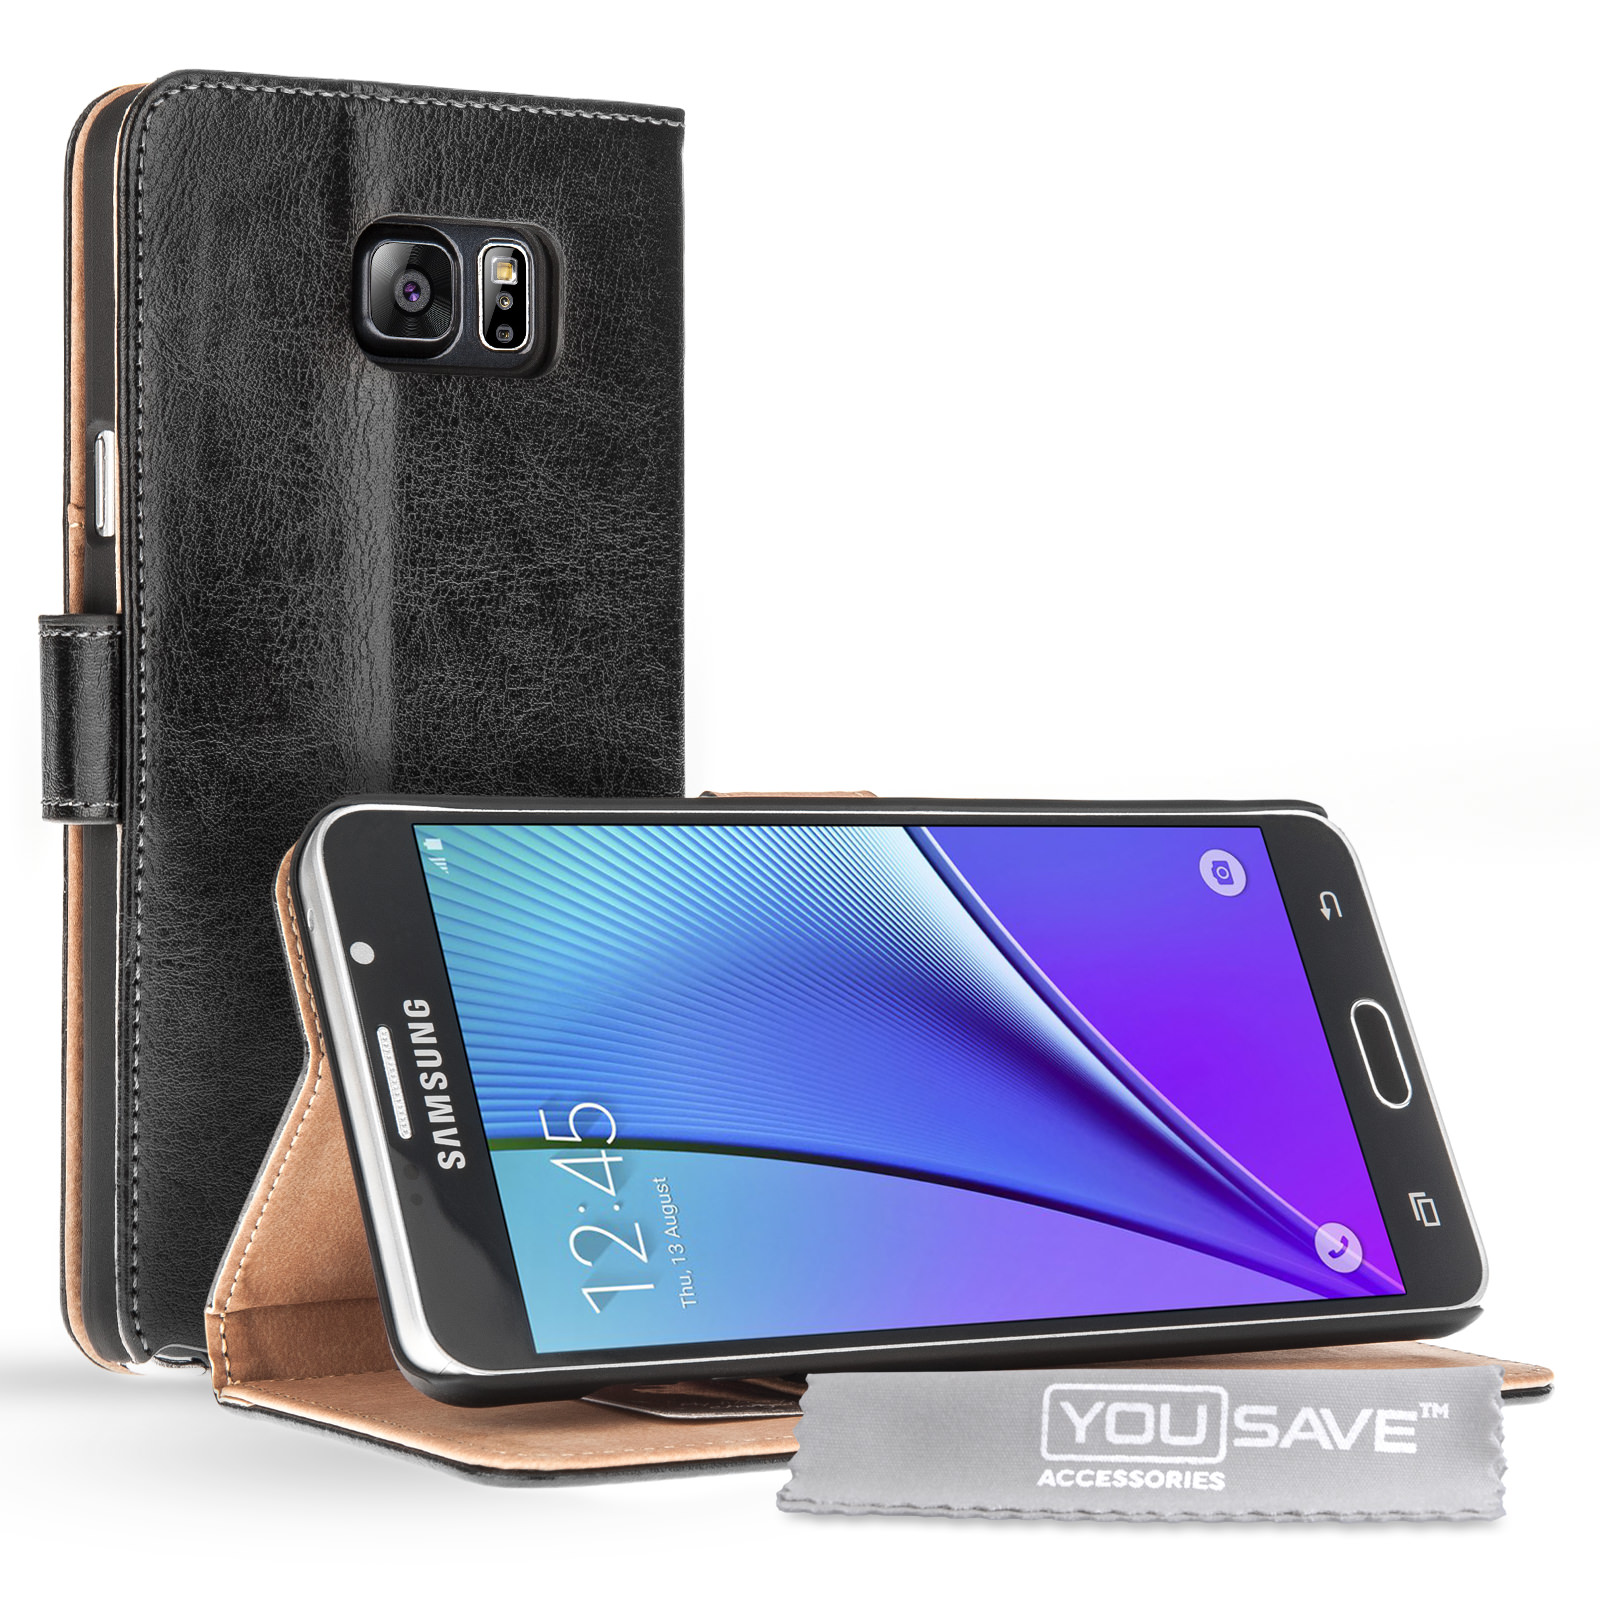 Yousave Accessories Samsung Galaxy Note 5 Leather-Effect Stand Wallet Case - Black